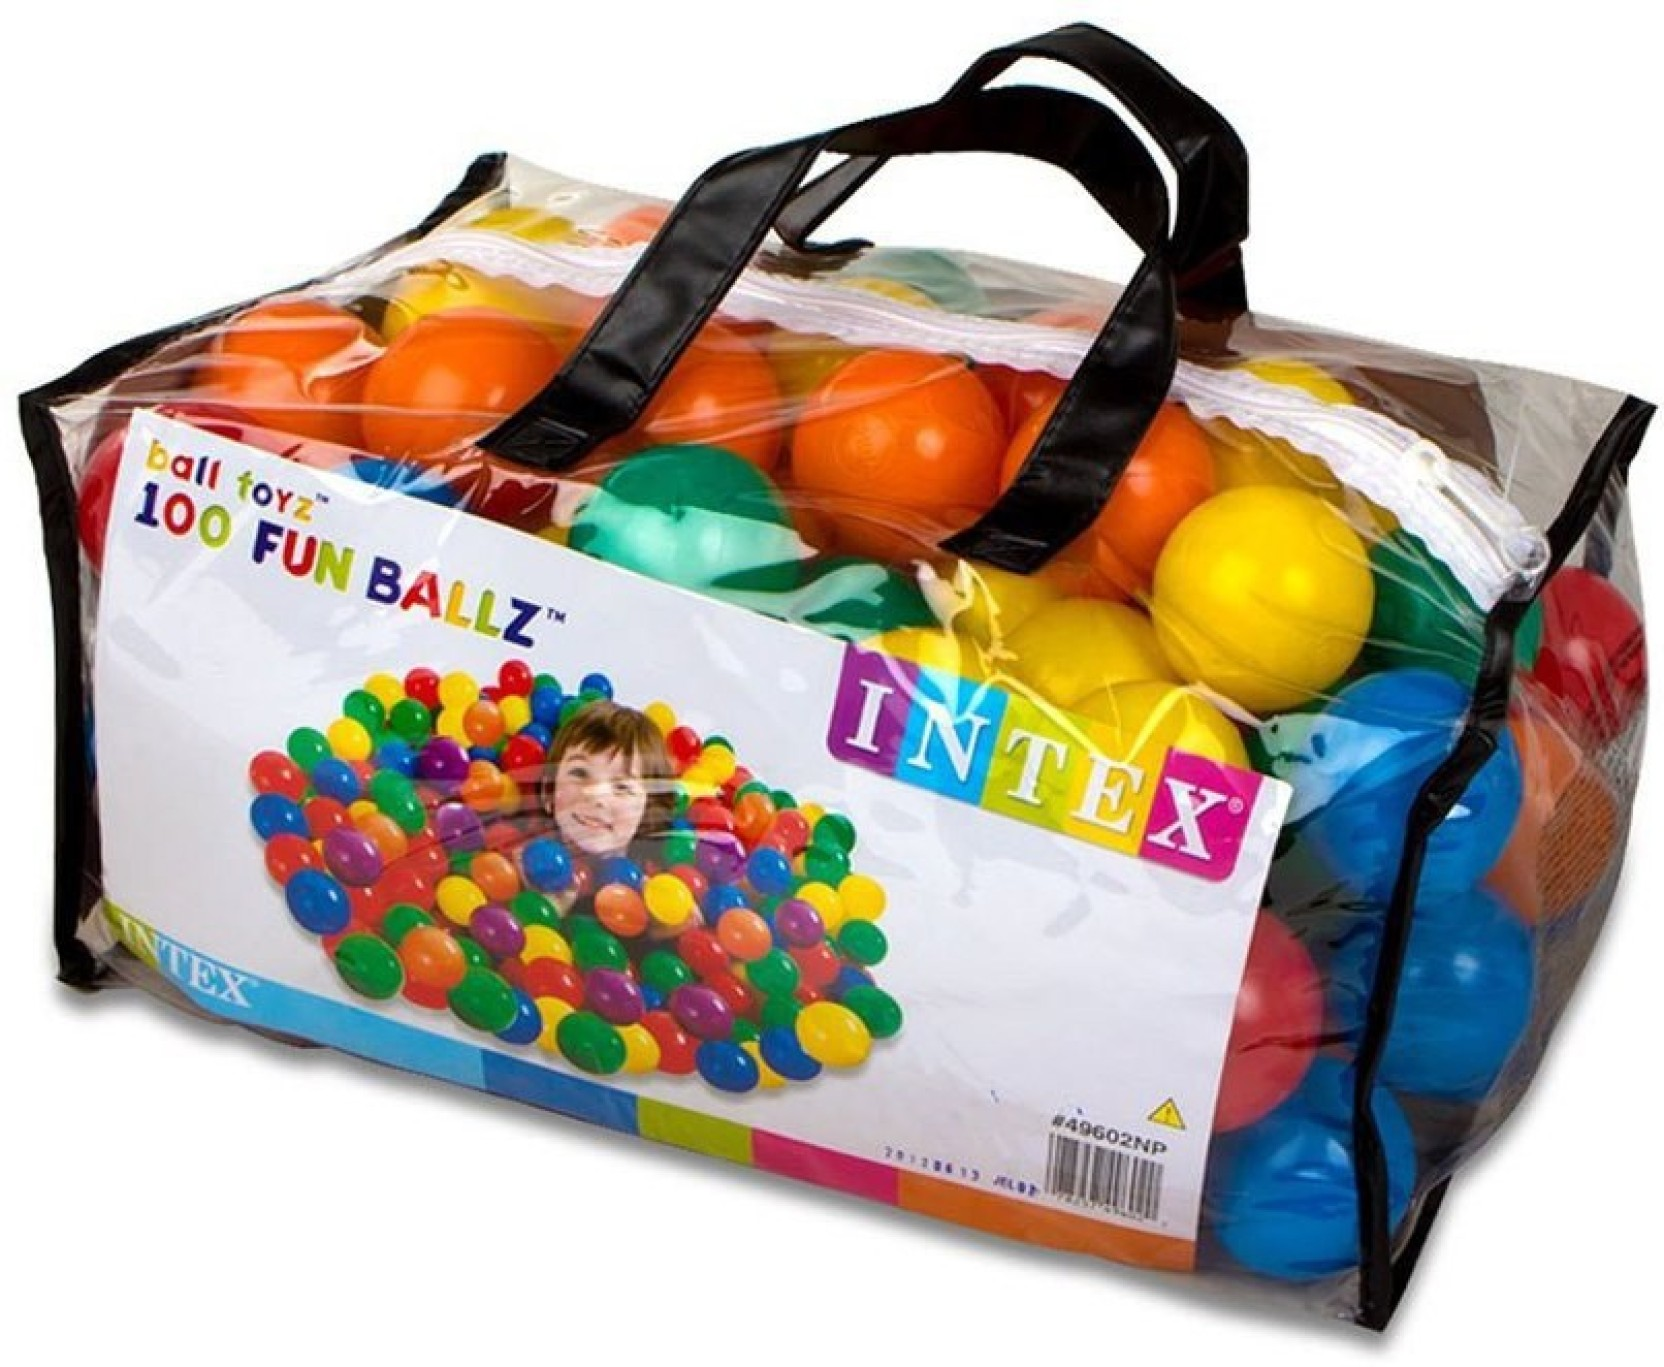 Intex Fun Balls 100 Pcs Fun Balls 100 Pcs Buy Balls toys in